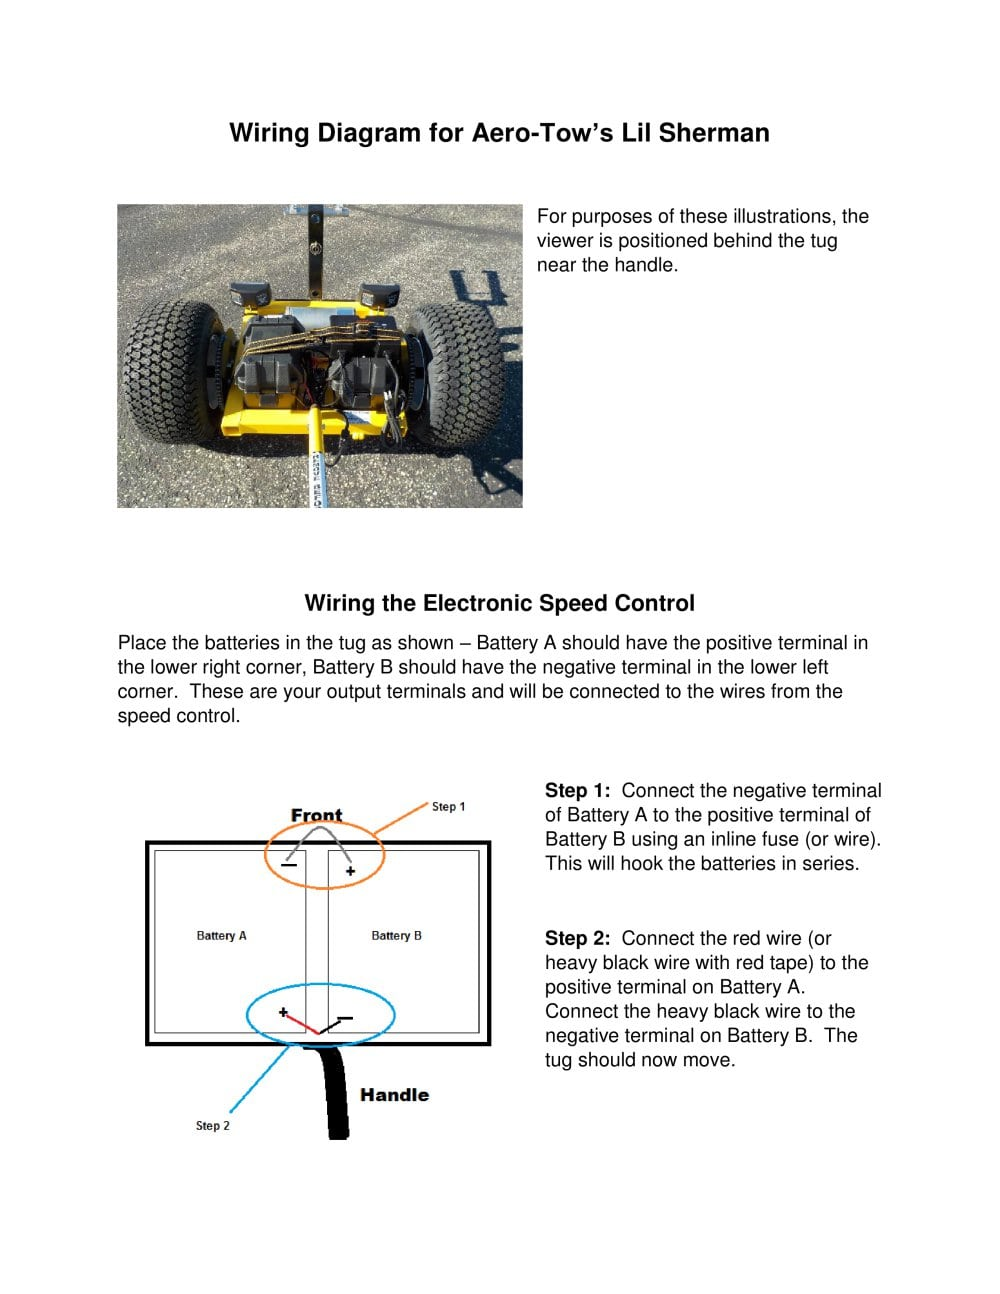 Tow Motor Wiring Excellent Electrical Diagram House Vehicle For Aero S Lil Sherman Llc Pdf Rh Aeroexpo Online Light